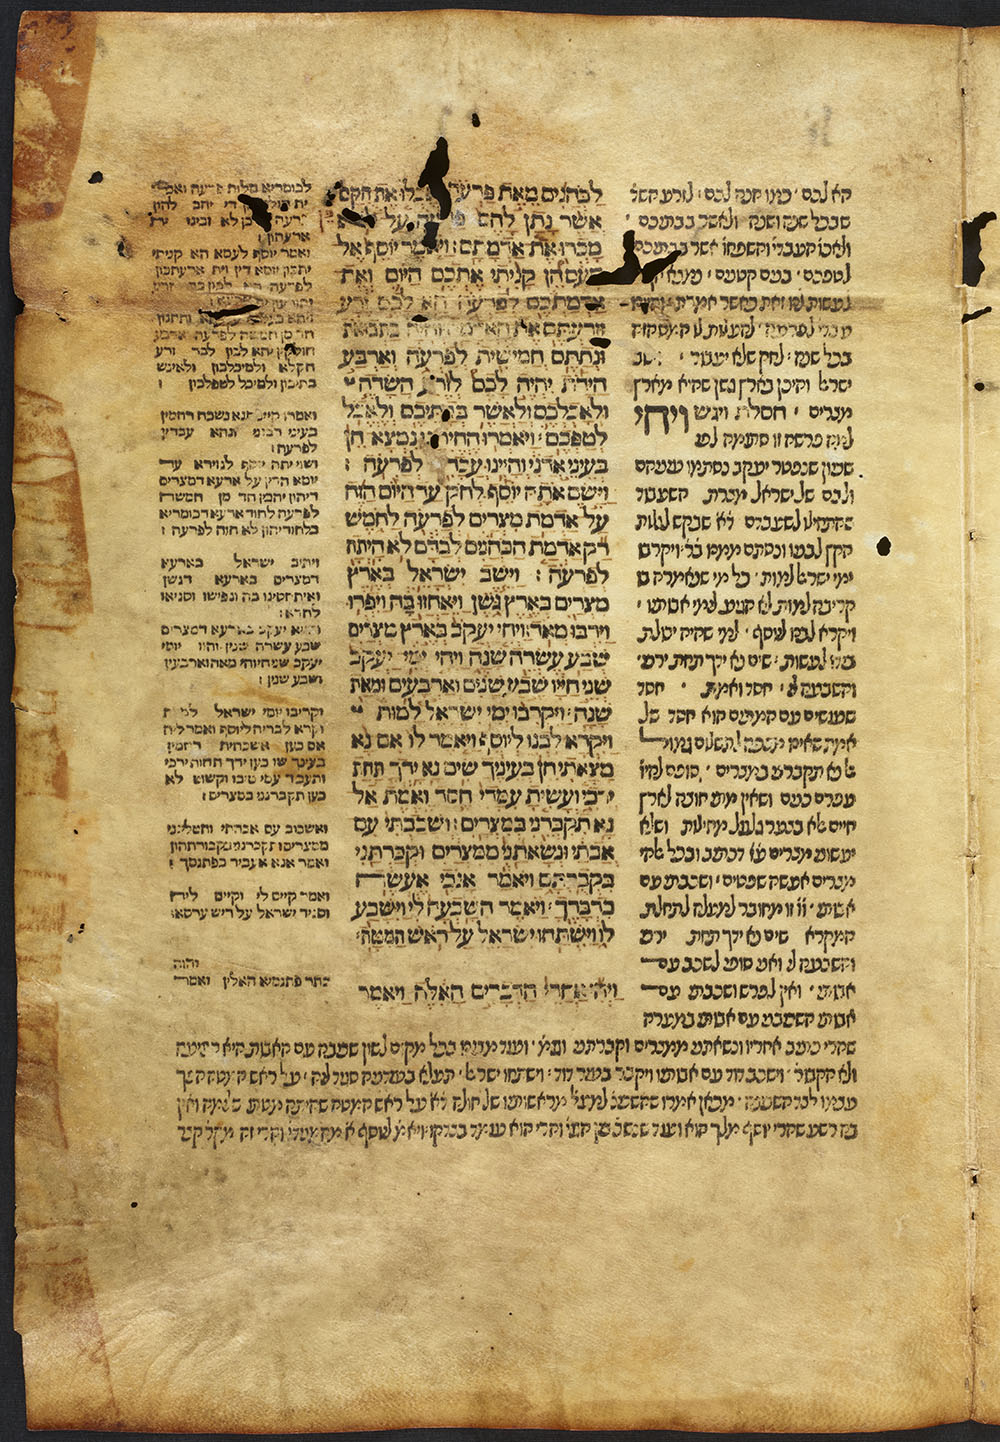 hebrew history essay Throughout the history of the world religion, the jewish people have been persecuted and burdened with cruel and unjust impositions because of their religious beliefs and traditions (essaycom, 2012) to understand the history of judaism we must have an open mind to see the hardships the religion as a whole community faced.